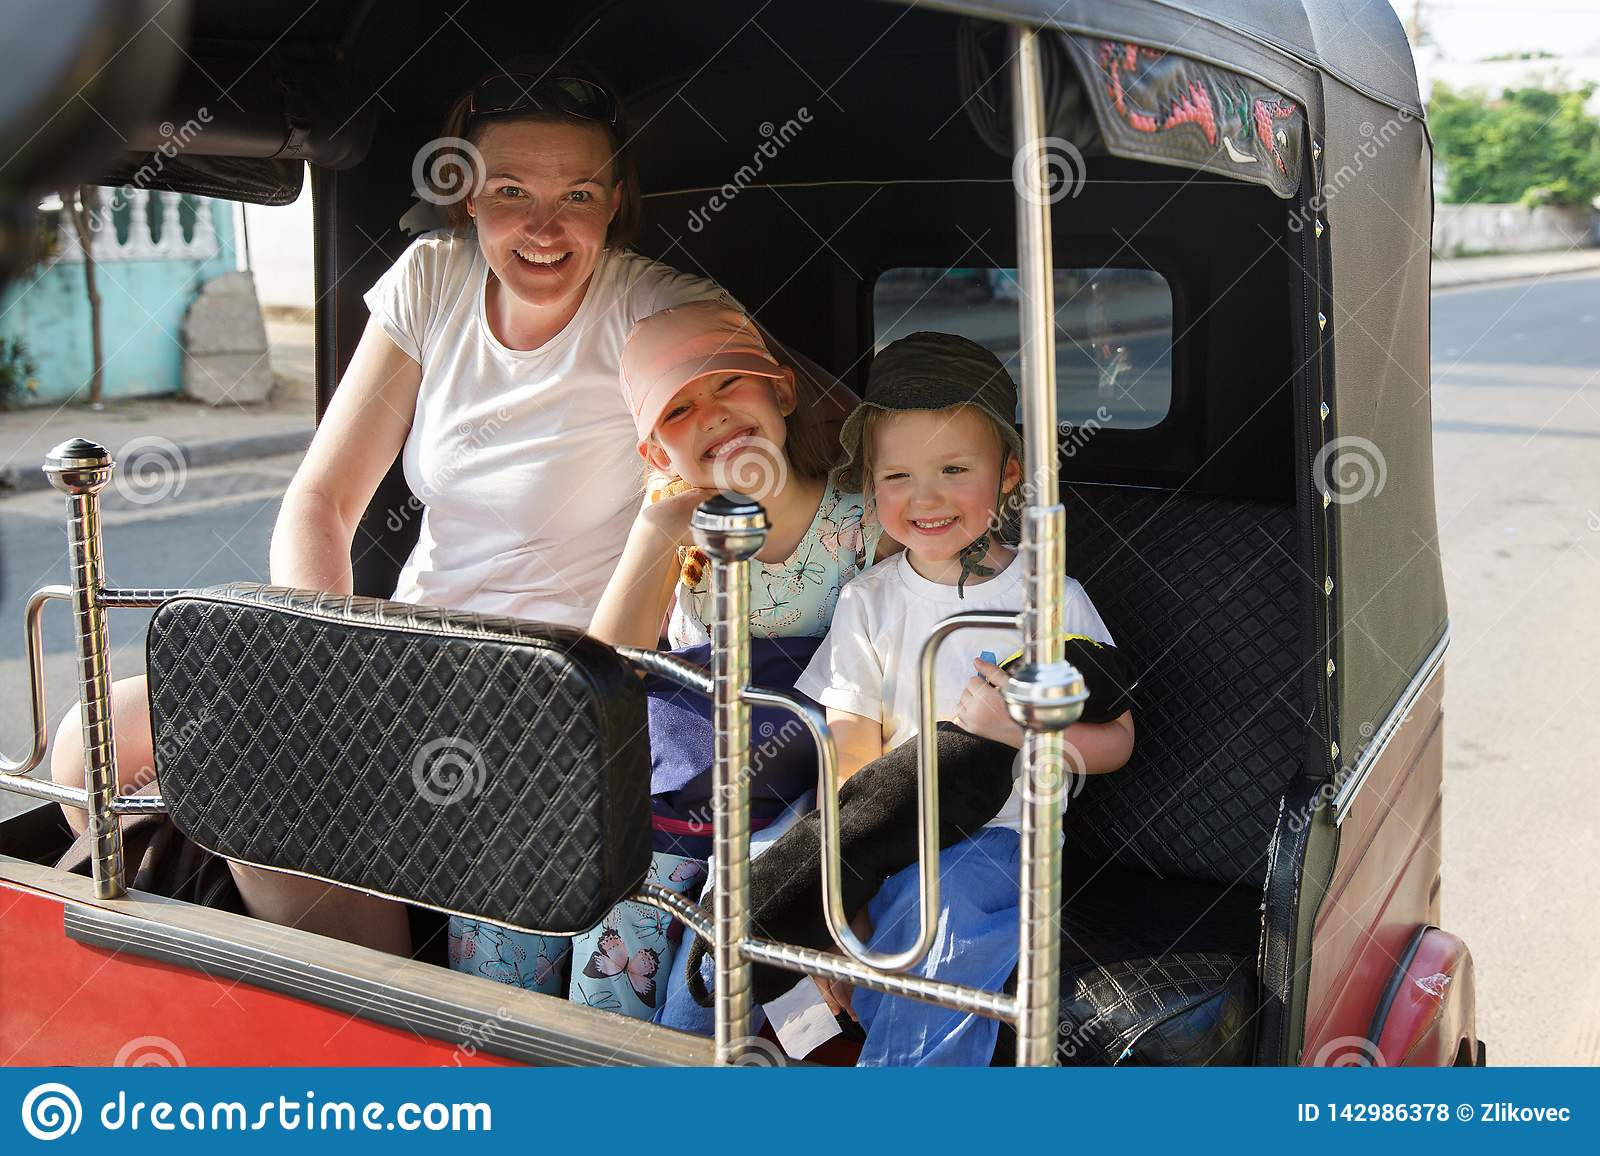 Family on vacation, mother and kids sitting in tuk-tuk, having fun